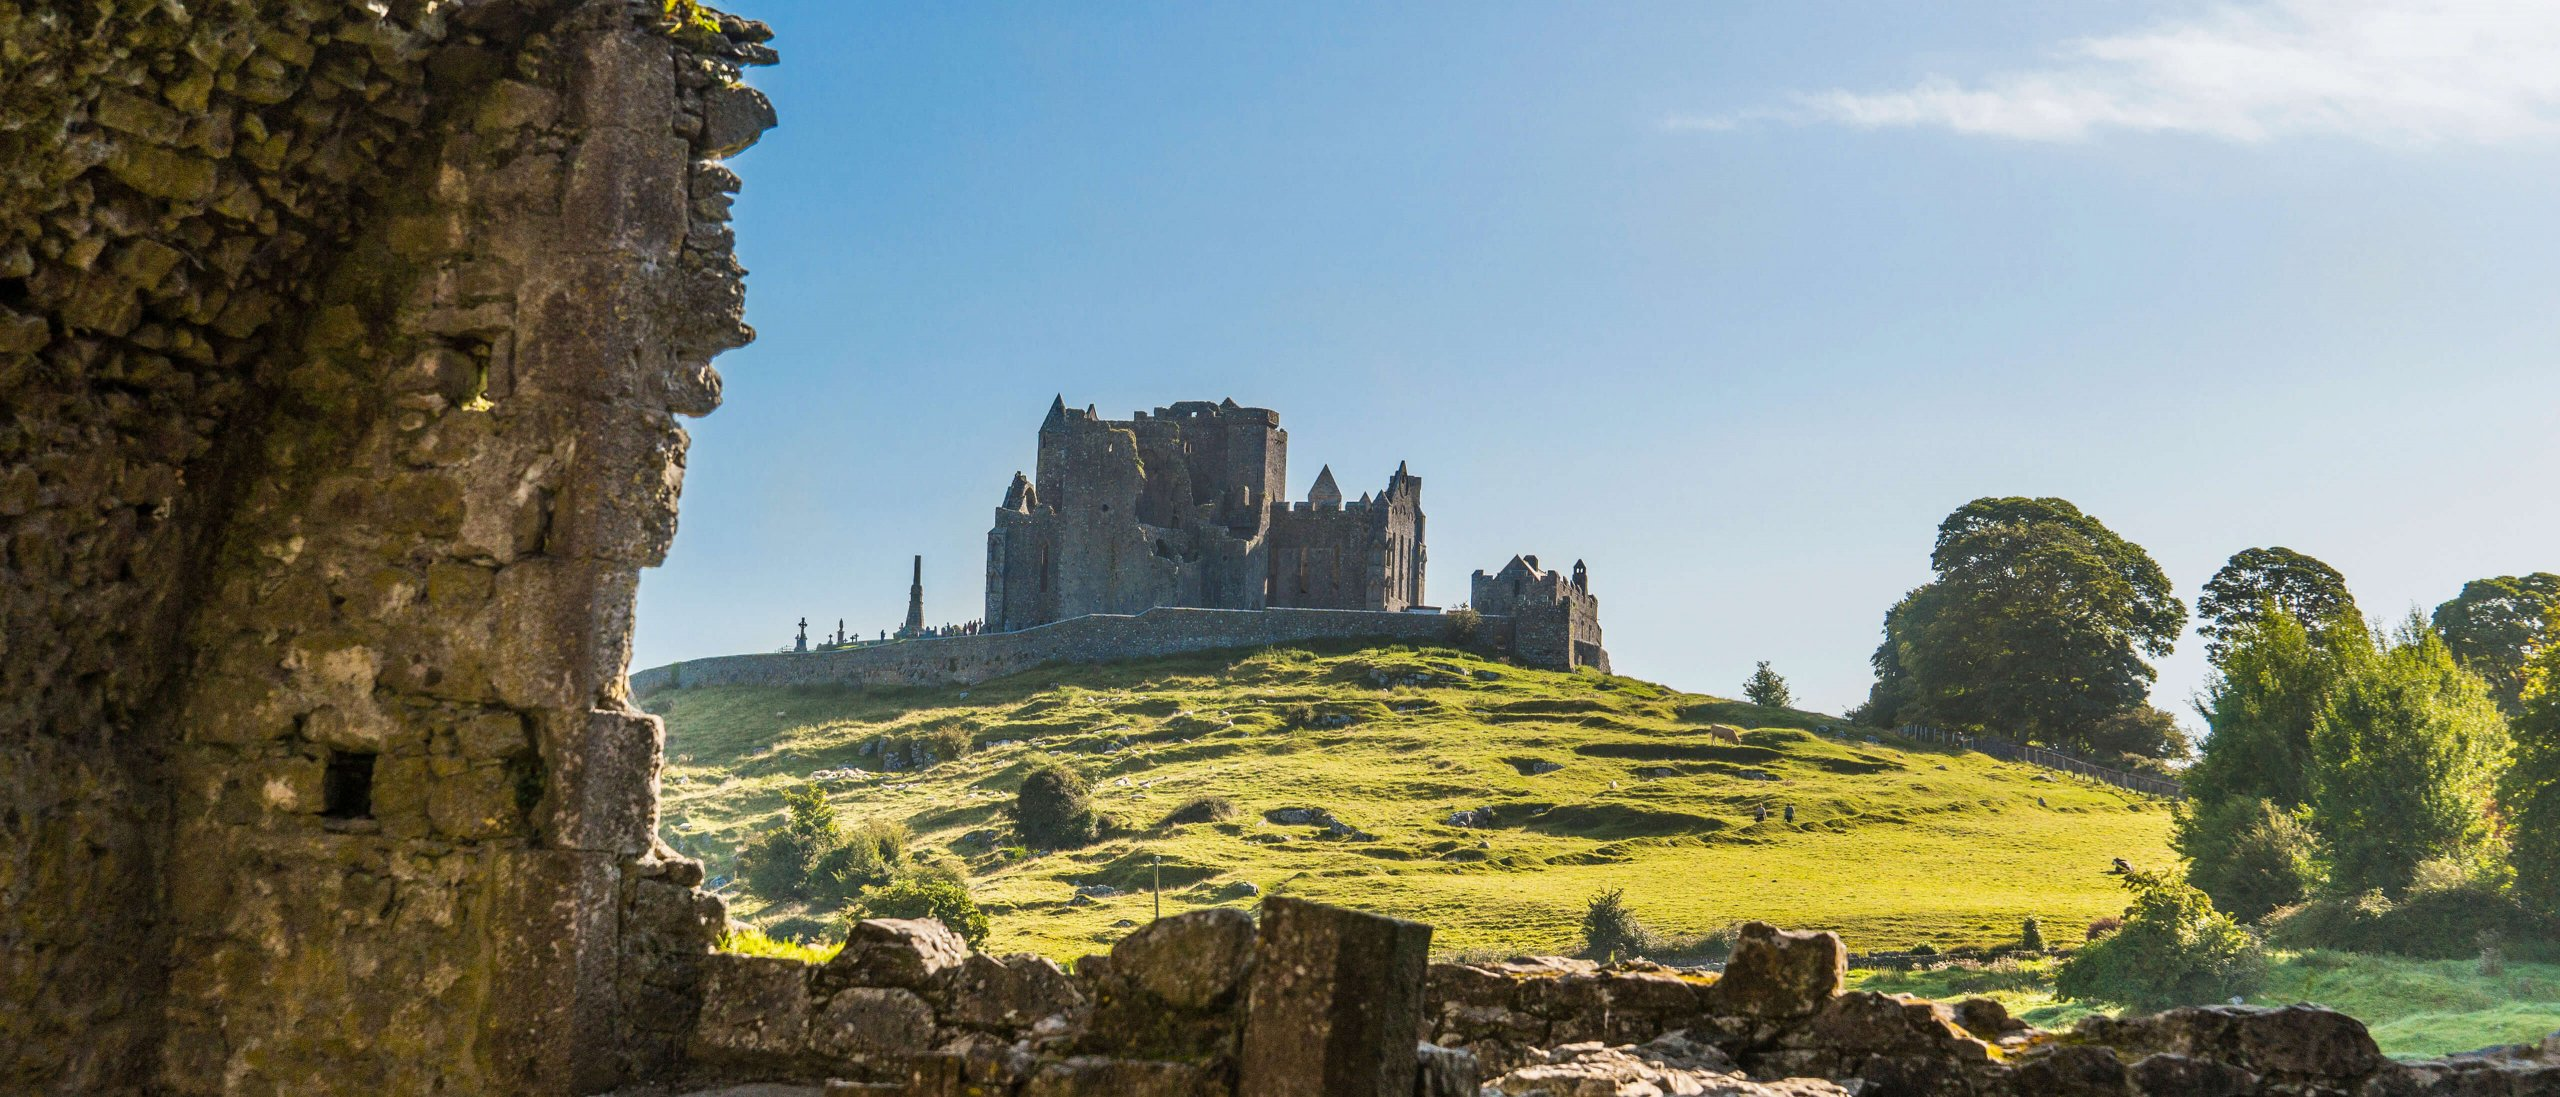 The Rock of Cashel pictured from a distance